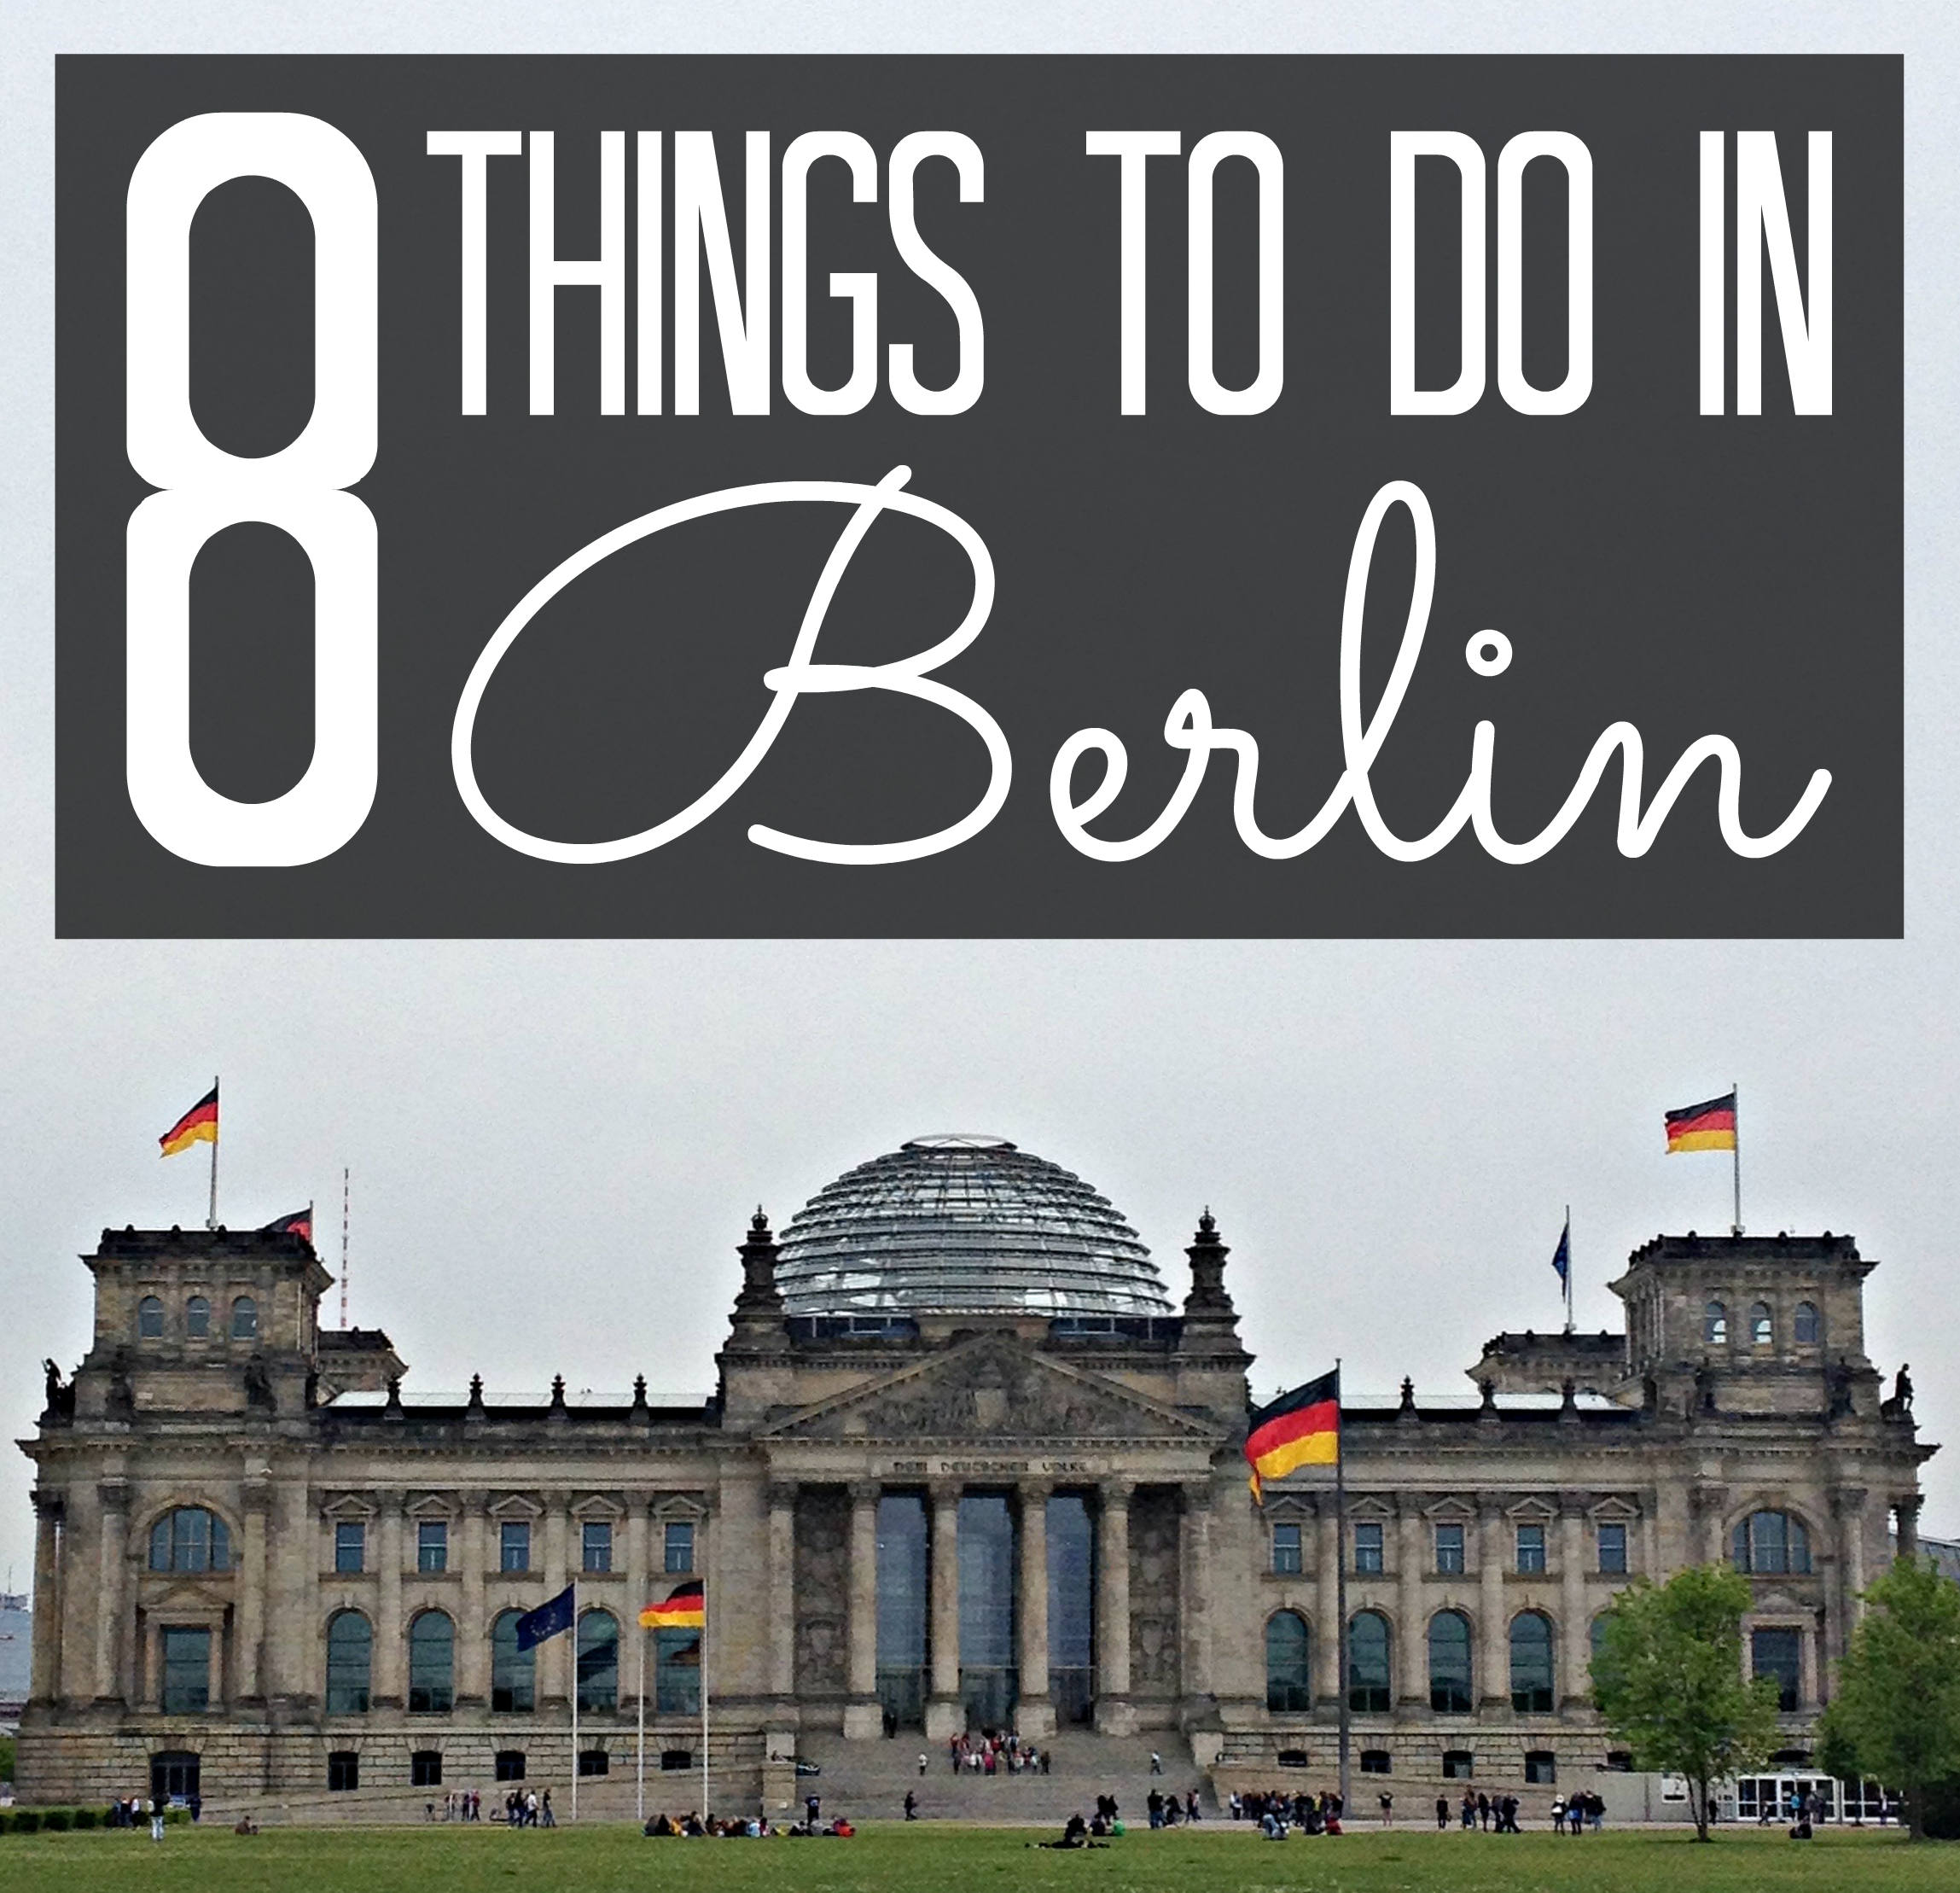 8 things to do in berlin germany traveling to berlin. Black Bedroom Furniture Sets. Home Design Ideas